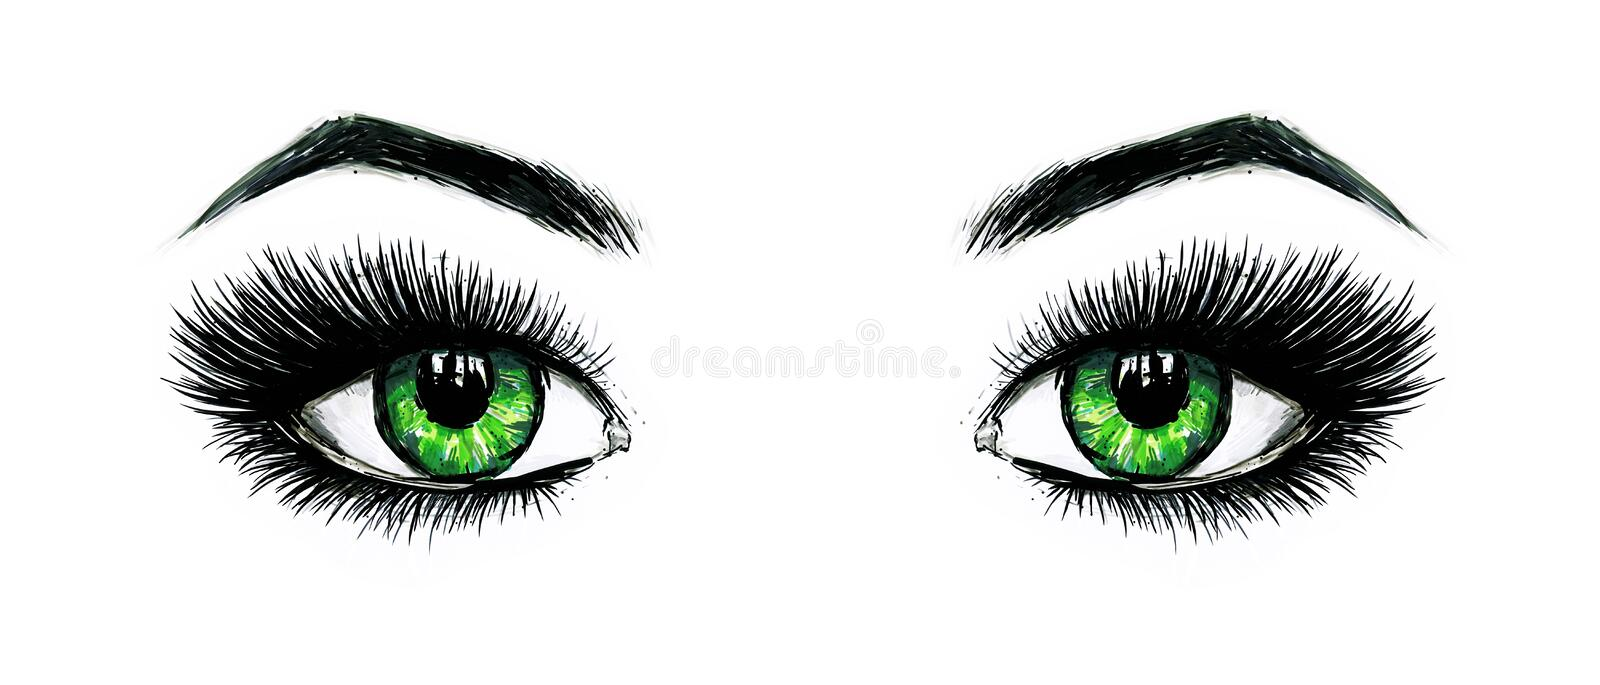 Beautiful open female green eyes with long eyelashes is isolated on a white background. Makeup template illustration. Color sketch royalty free illustration